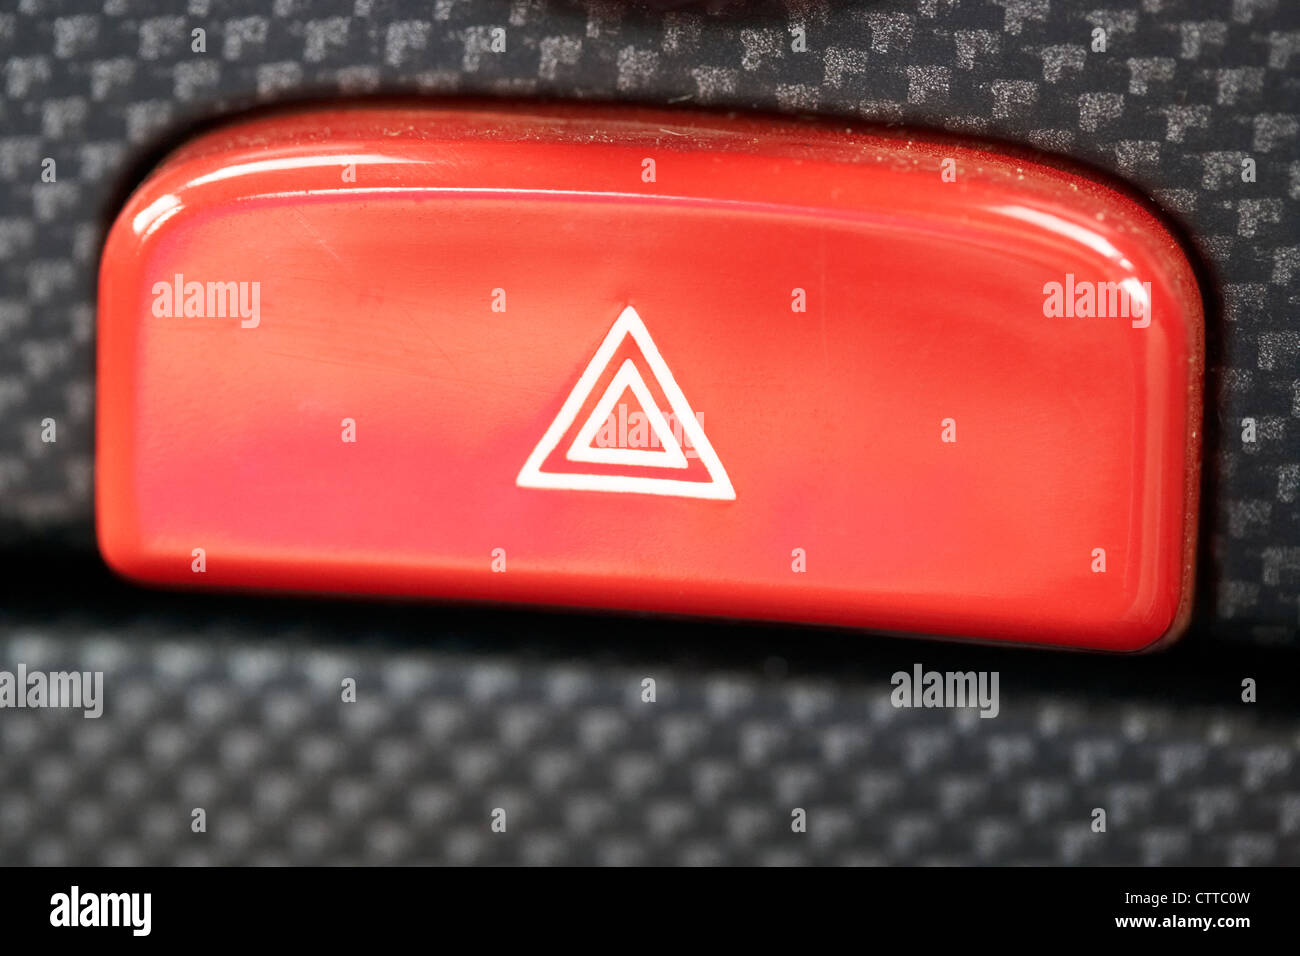 in car hazard warning light button - Stock Image